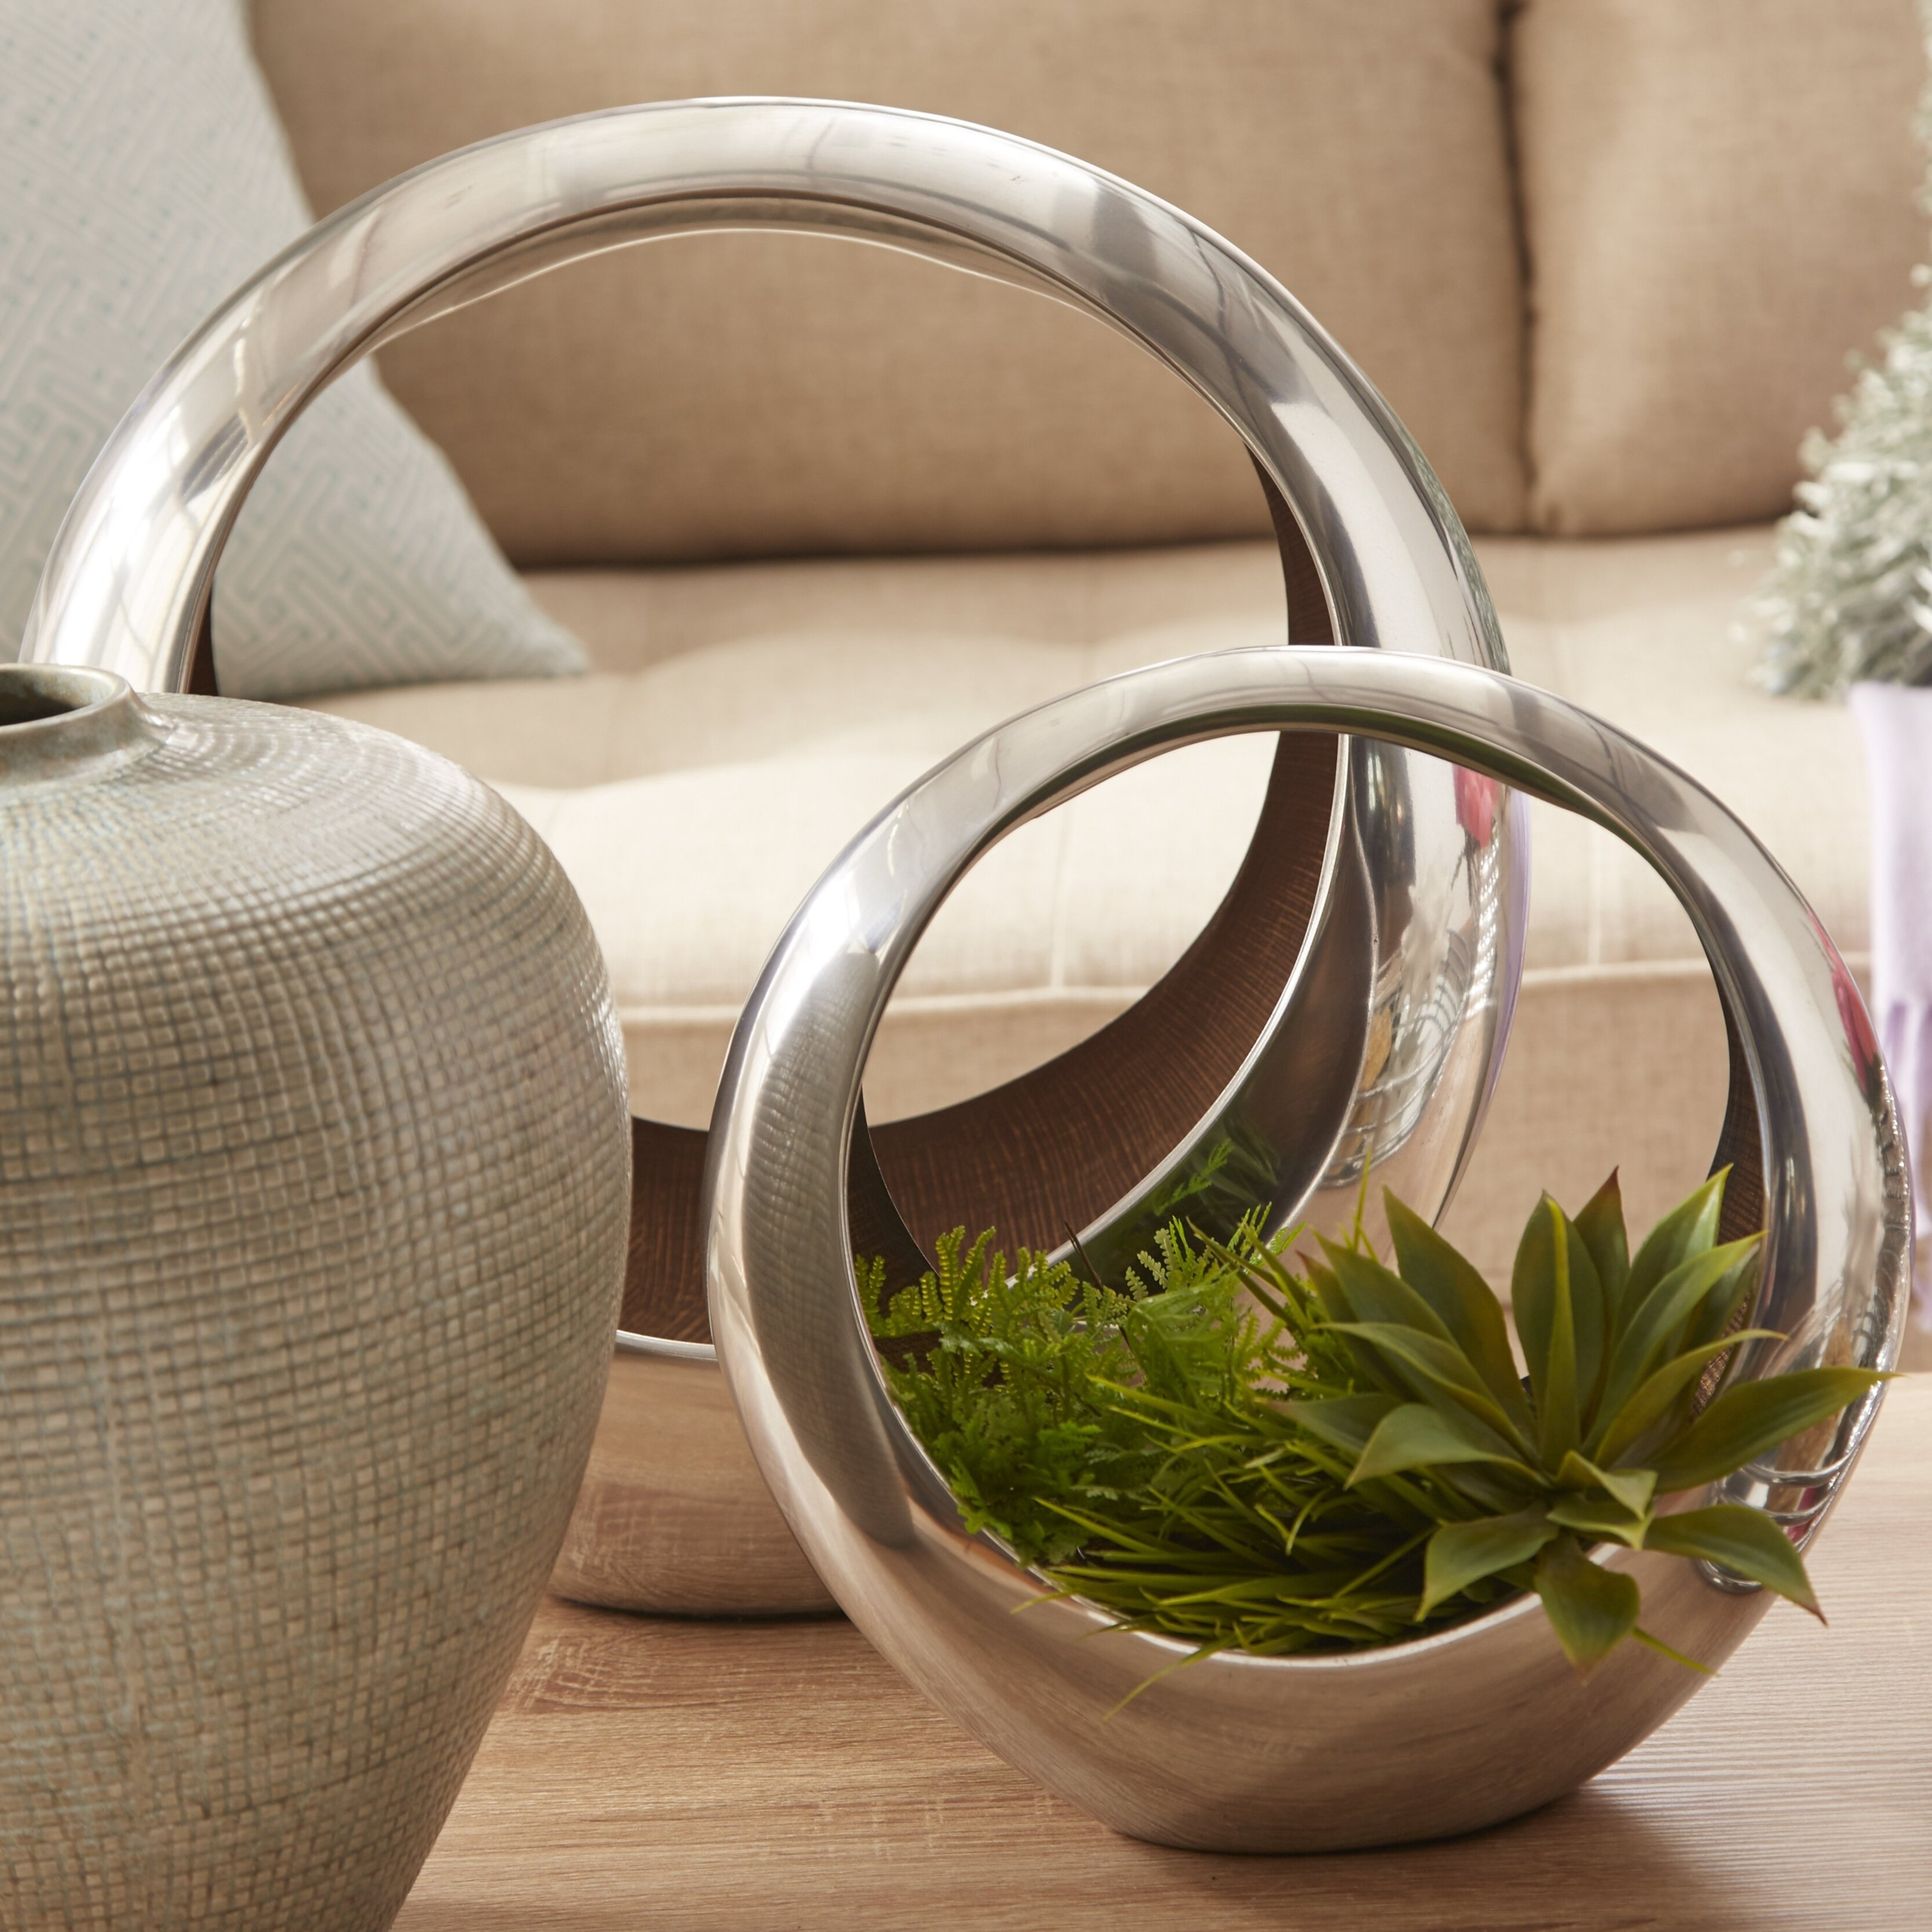 Dangelo Ring Decorative Bowl